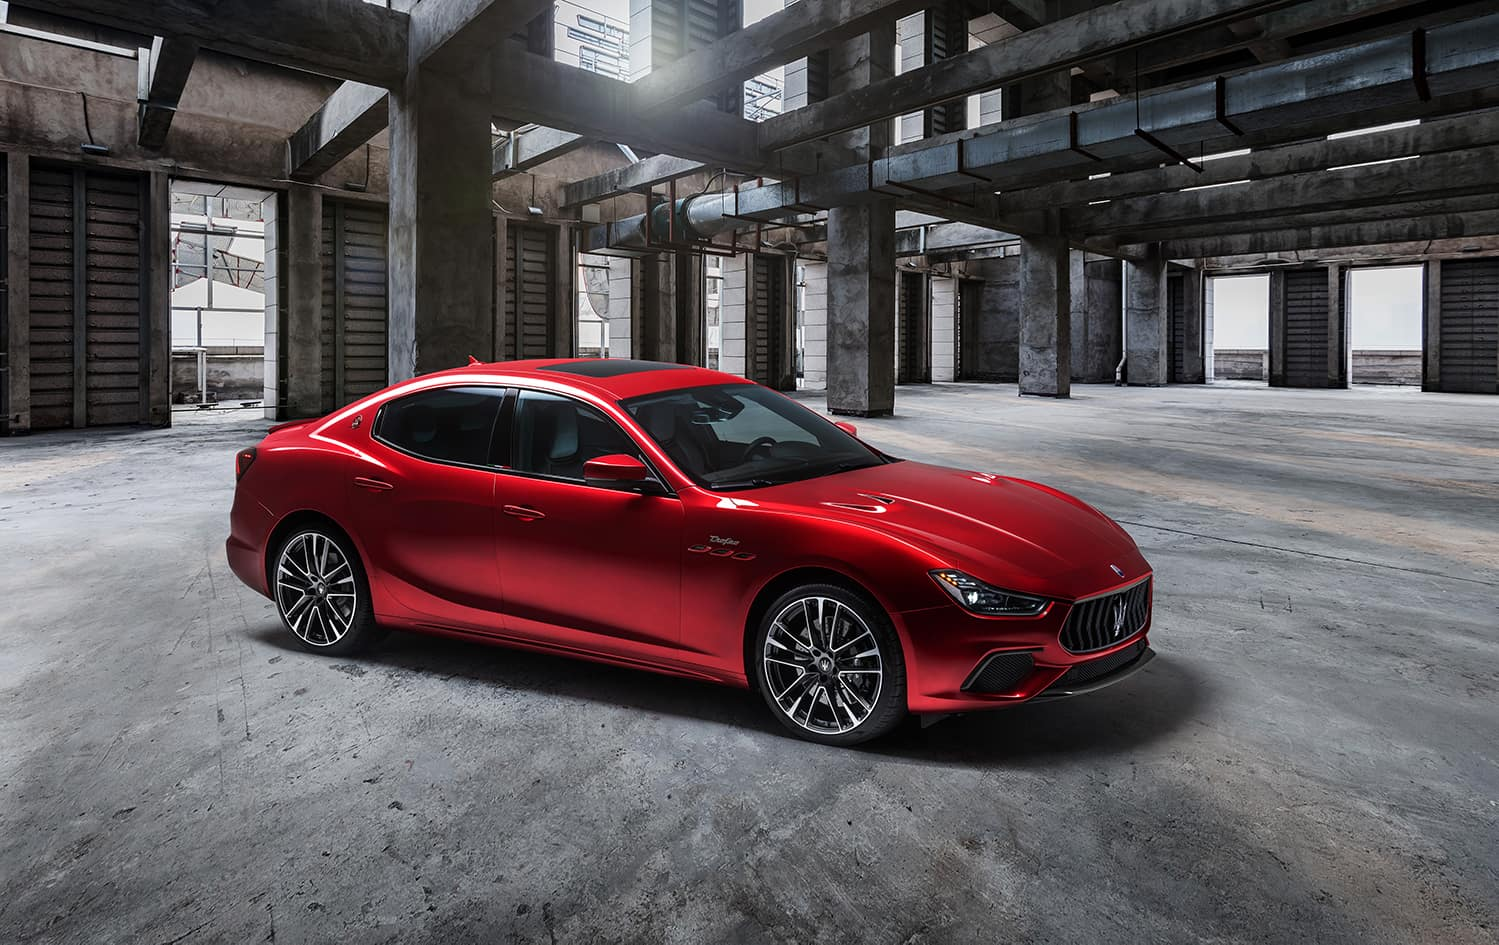 2021 Maserati Ghibli parked in industril building | Bennett Maserati of Allentown is a Car Dealership near East Stroudsburg PA in Allentown